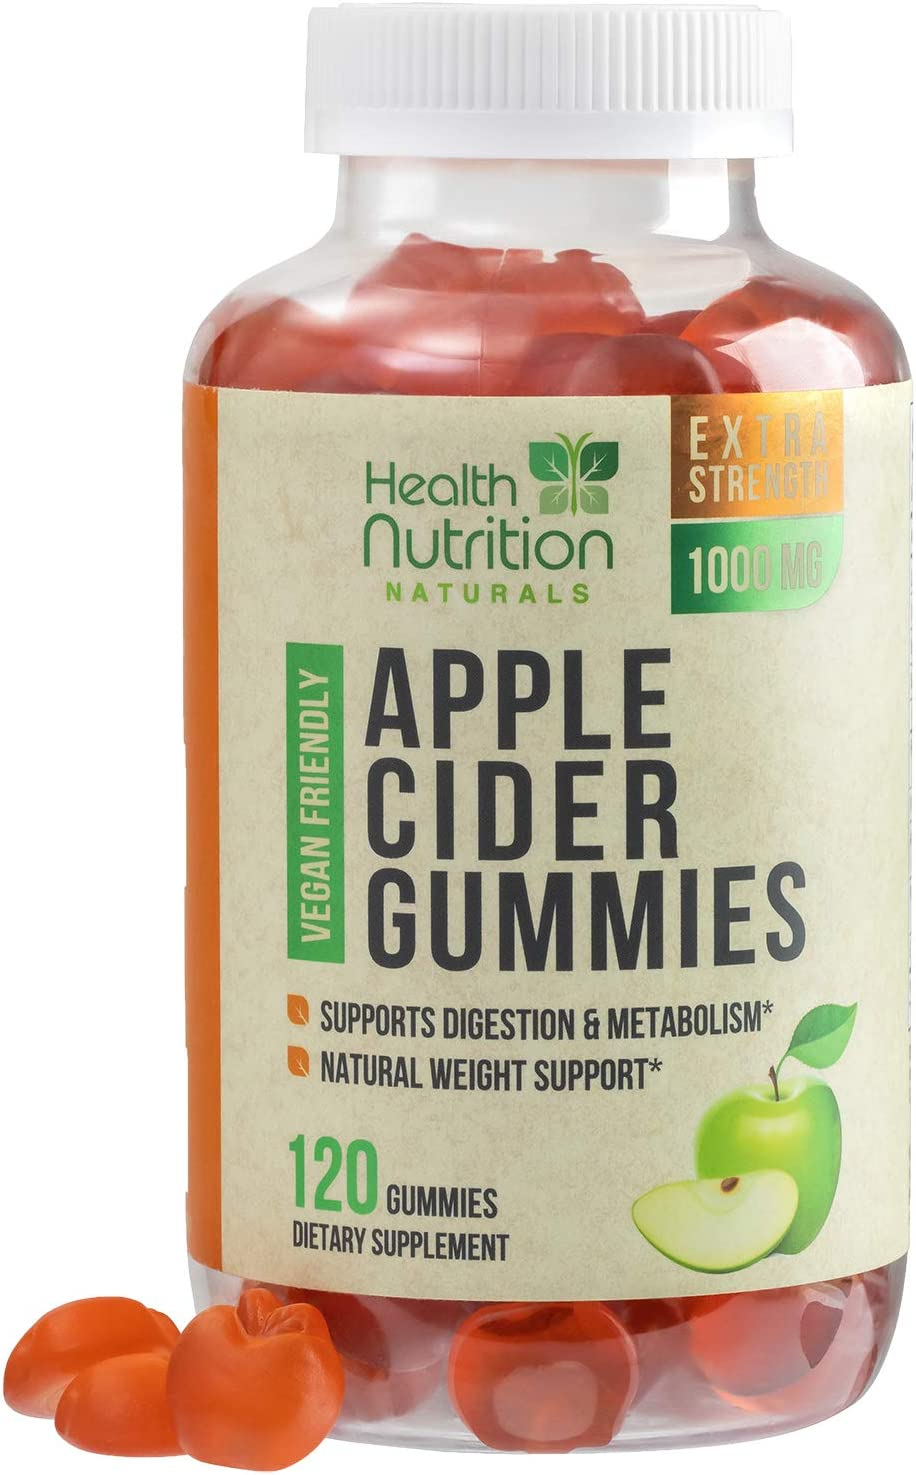 Apple Cider Vinegar Gummies for Weight Support and Cleanse 1000mg - Delicious ACV Gummy Vitamins with The Mother - Folic Acid, Beet Juice, Pomegranate - Non-GMO - 120 Gummies